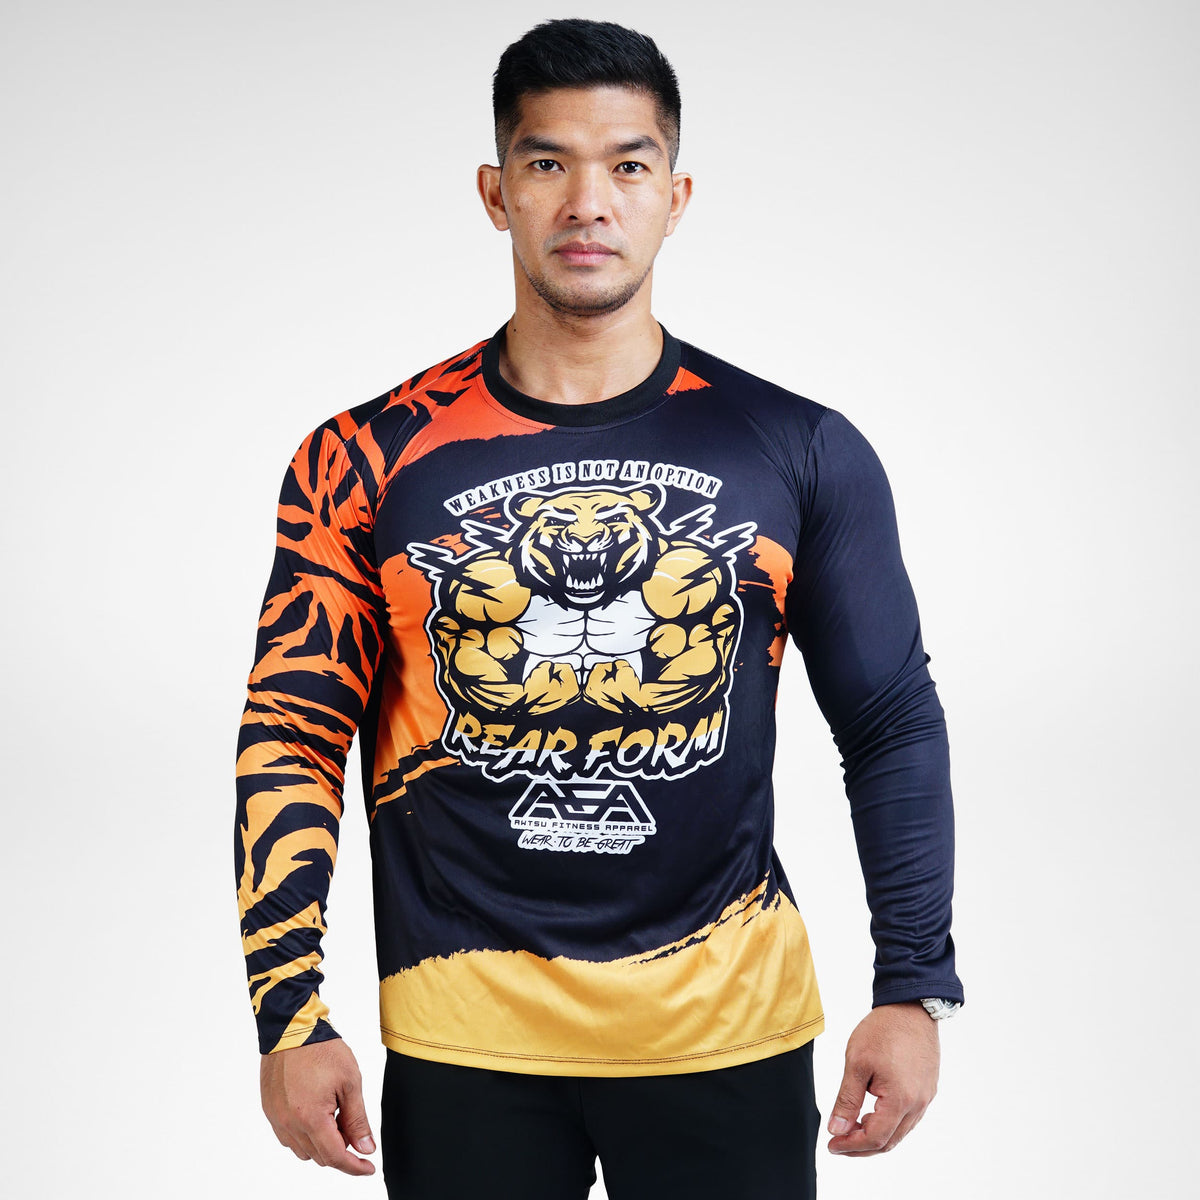 Rear Form Sublimation Long Sleeve T-Shirt